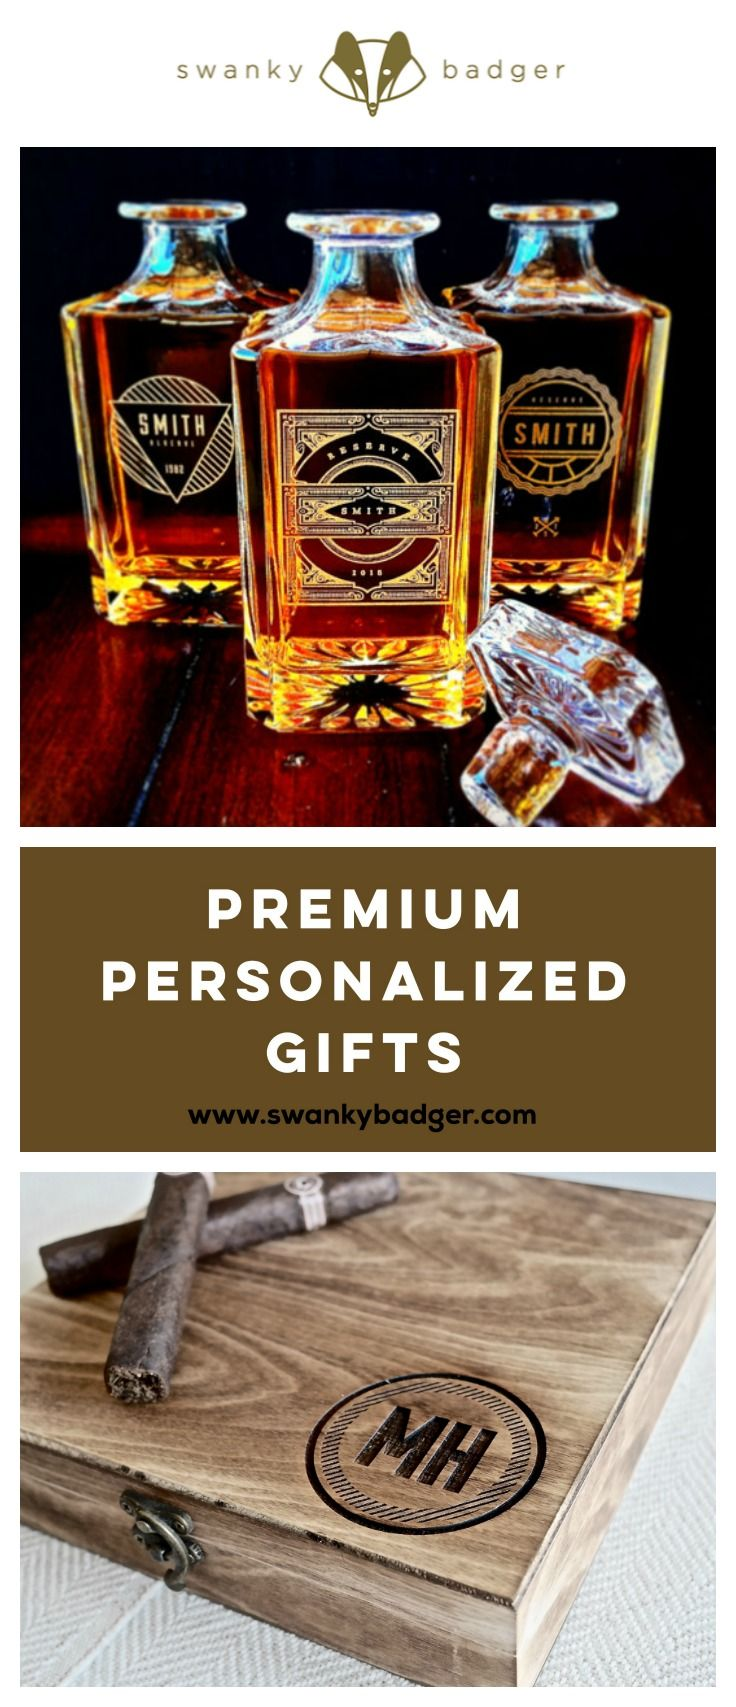 Premium Personalized Gifts for Men from Swanky Badger are the perfect solution for any gifting occasion. With a range of gifts that can be personalized to feature names, significant dates, or a personal message of your choice, Swanky Badger products feature the dandiest of details to delight the dudes you hold so dear. www.swankybadger.com